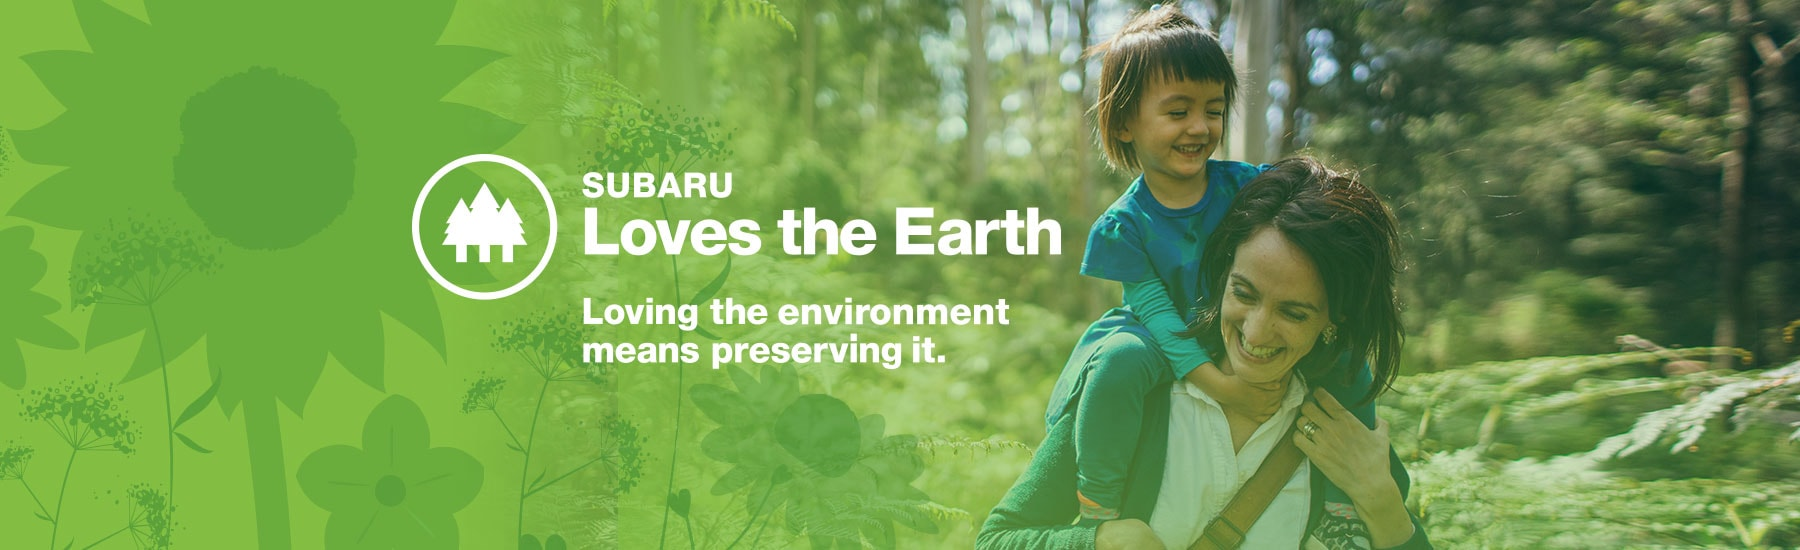 Timmons Subaru Long Beach loves teh earth recycling program